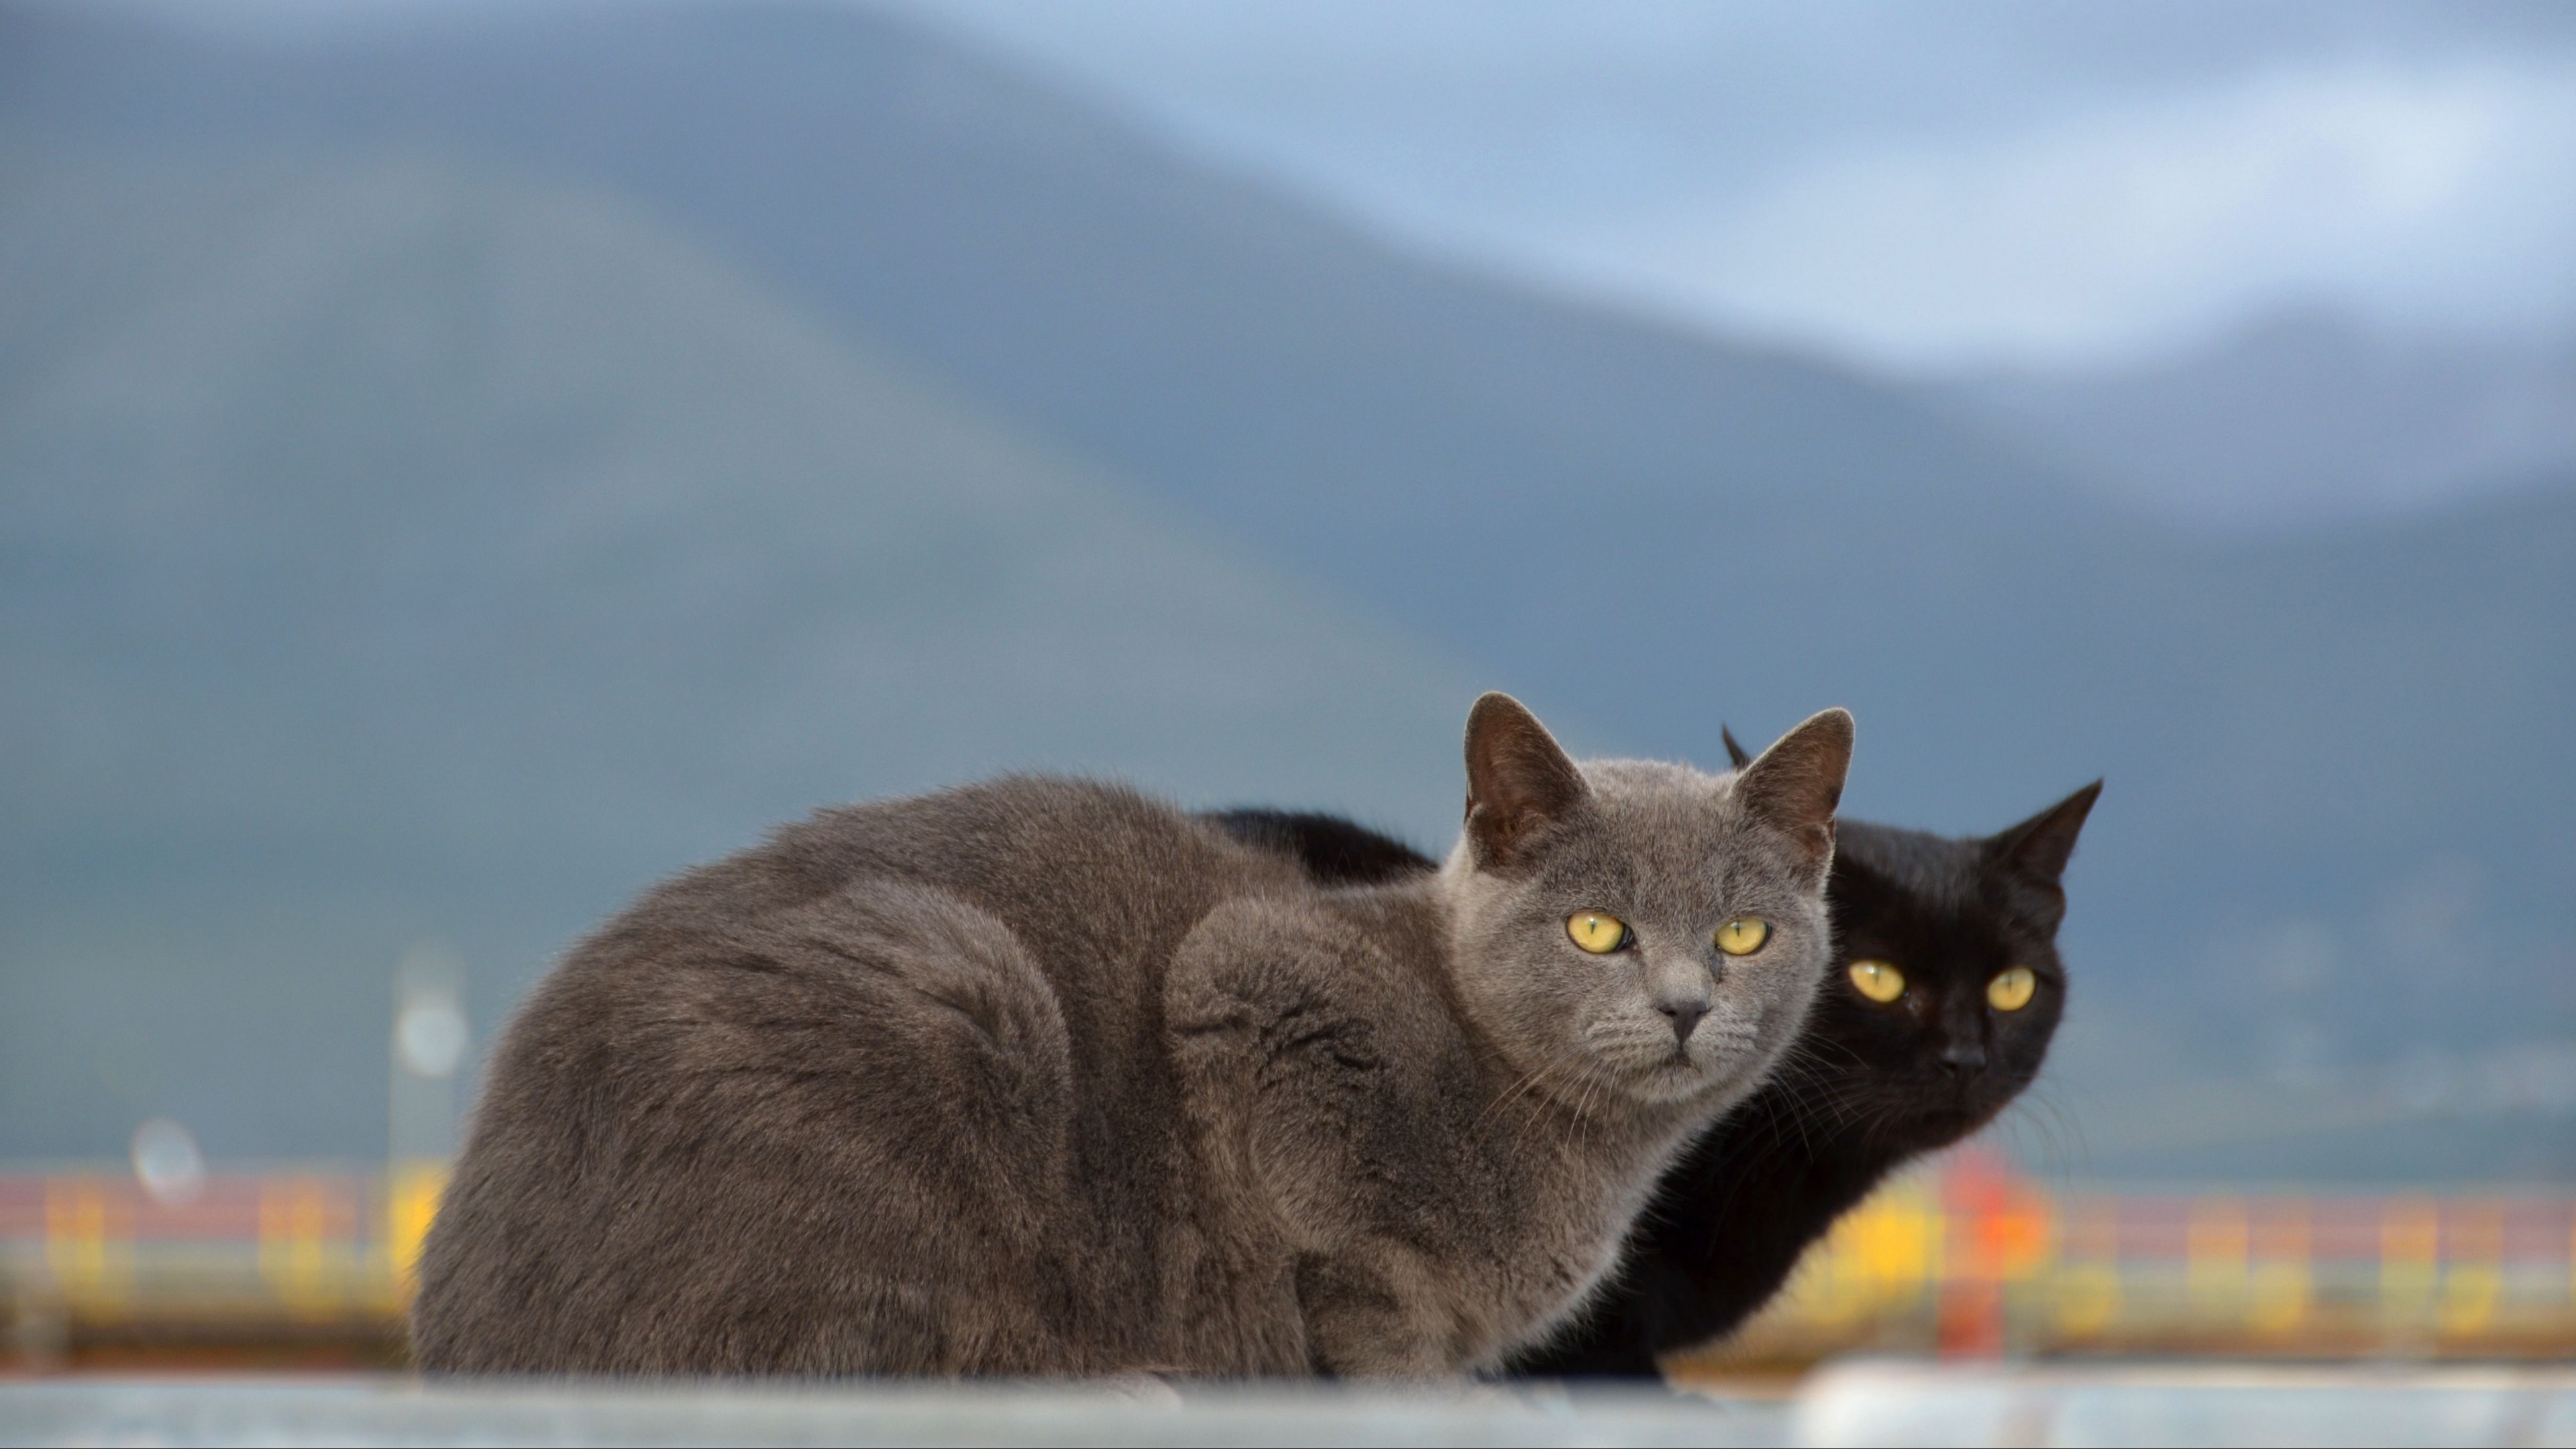 cats couple mountains blurring 4k 1542242885 - cats, couple, mountains, blurring 4k - Mountains, Couple, cats